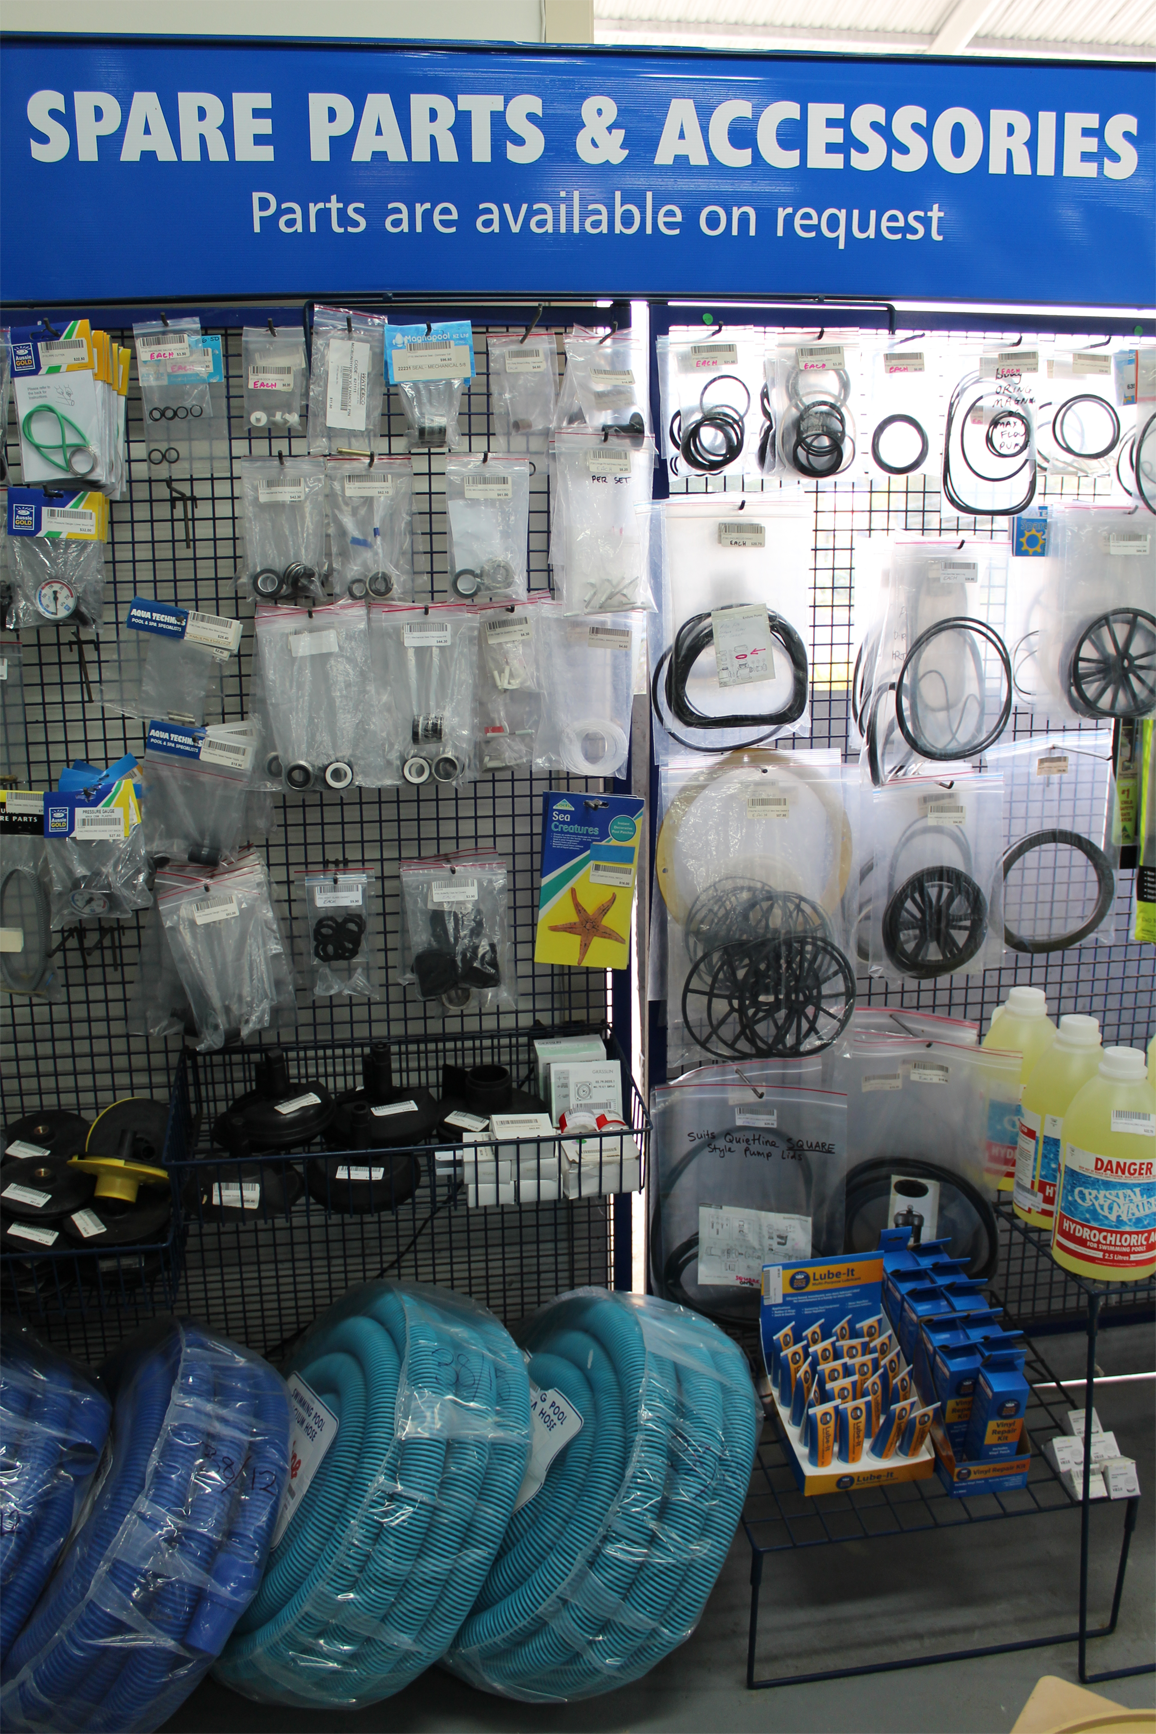 Aqua Technics stocks a huge range of accessories, spare parts and plumbing fittings in store at 27 The Concourse, Henderson.